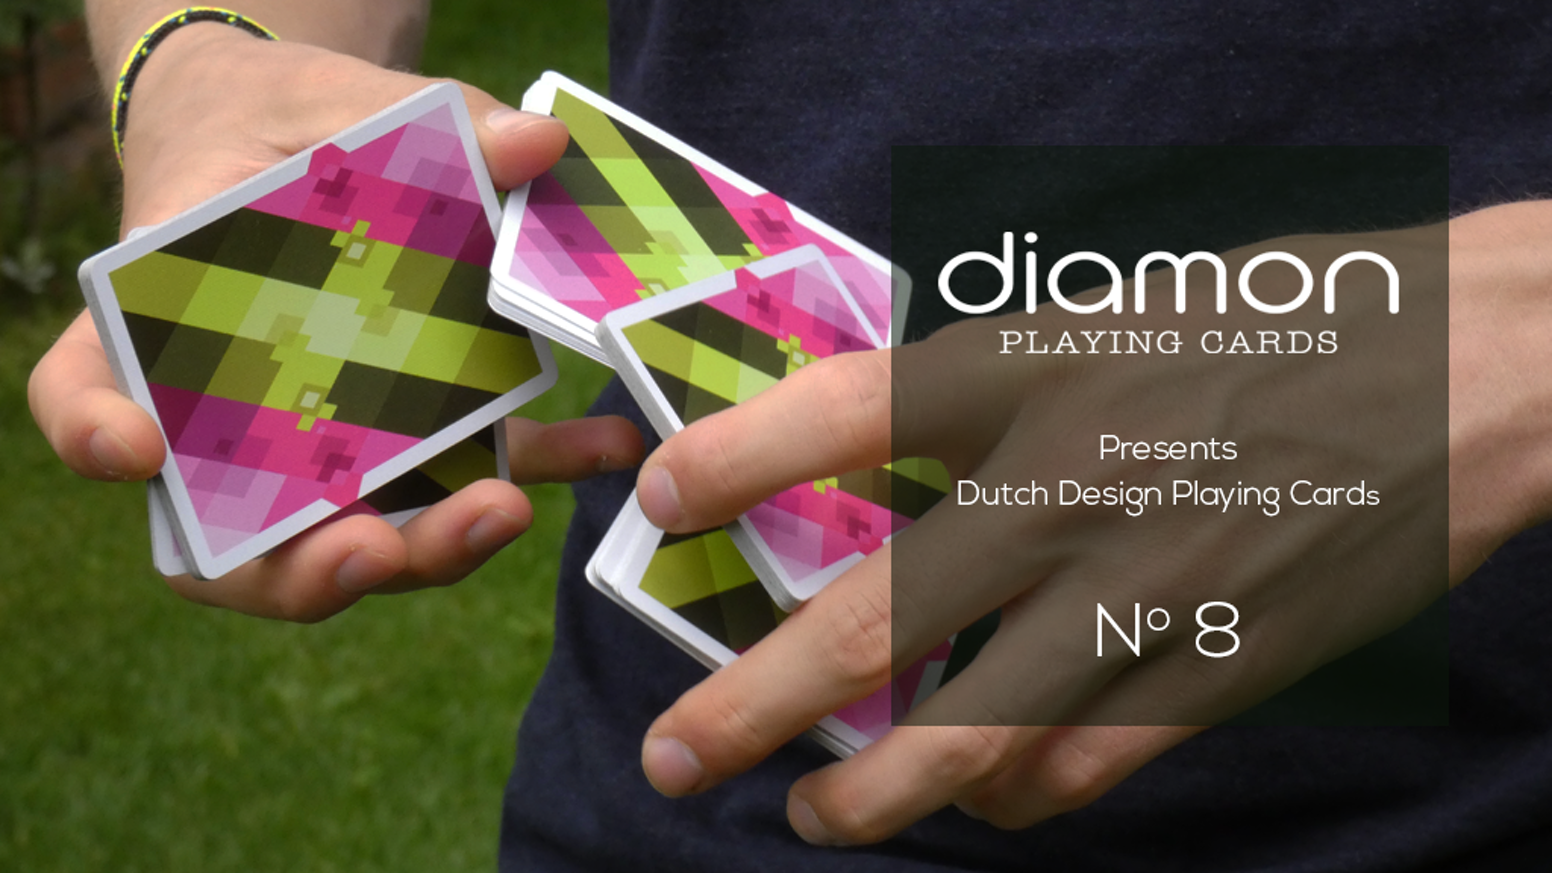 100% Custom Playing Cards for collectors, magicians and cardists. N° 8. Dutch Design, printed by the USPCC.